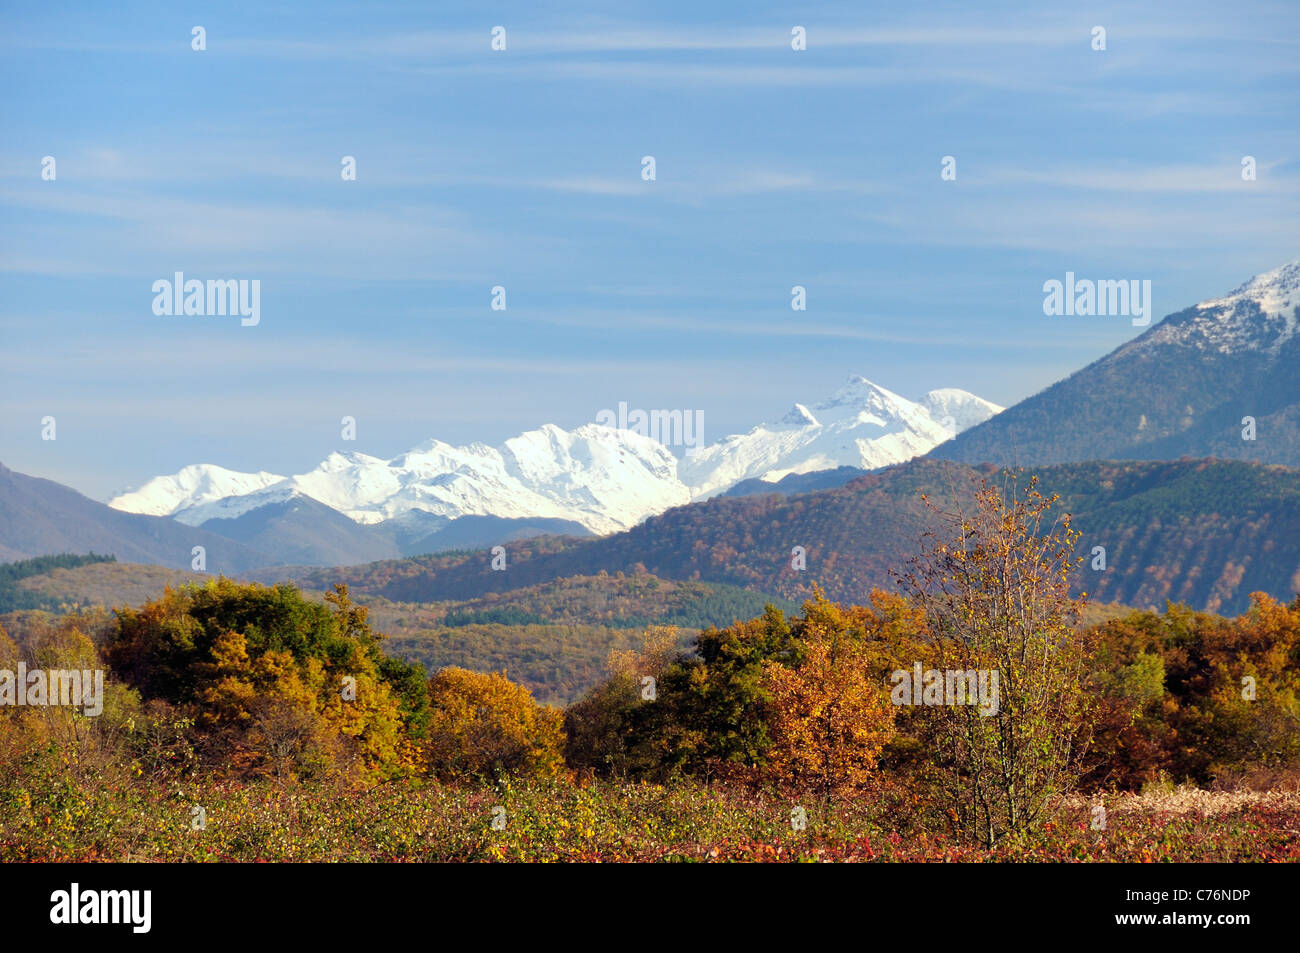 Distant view of snow topped Pyrenees mountain chain with autumnal bushes and trees in the foreground, Gascony, France, Stock Photo